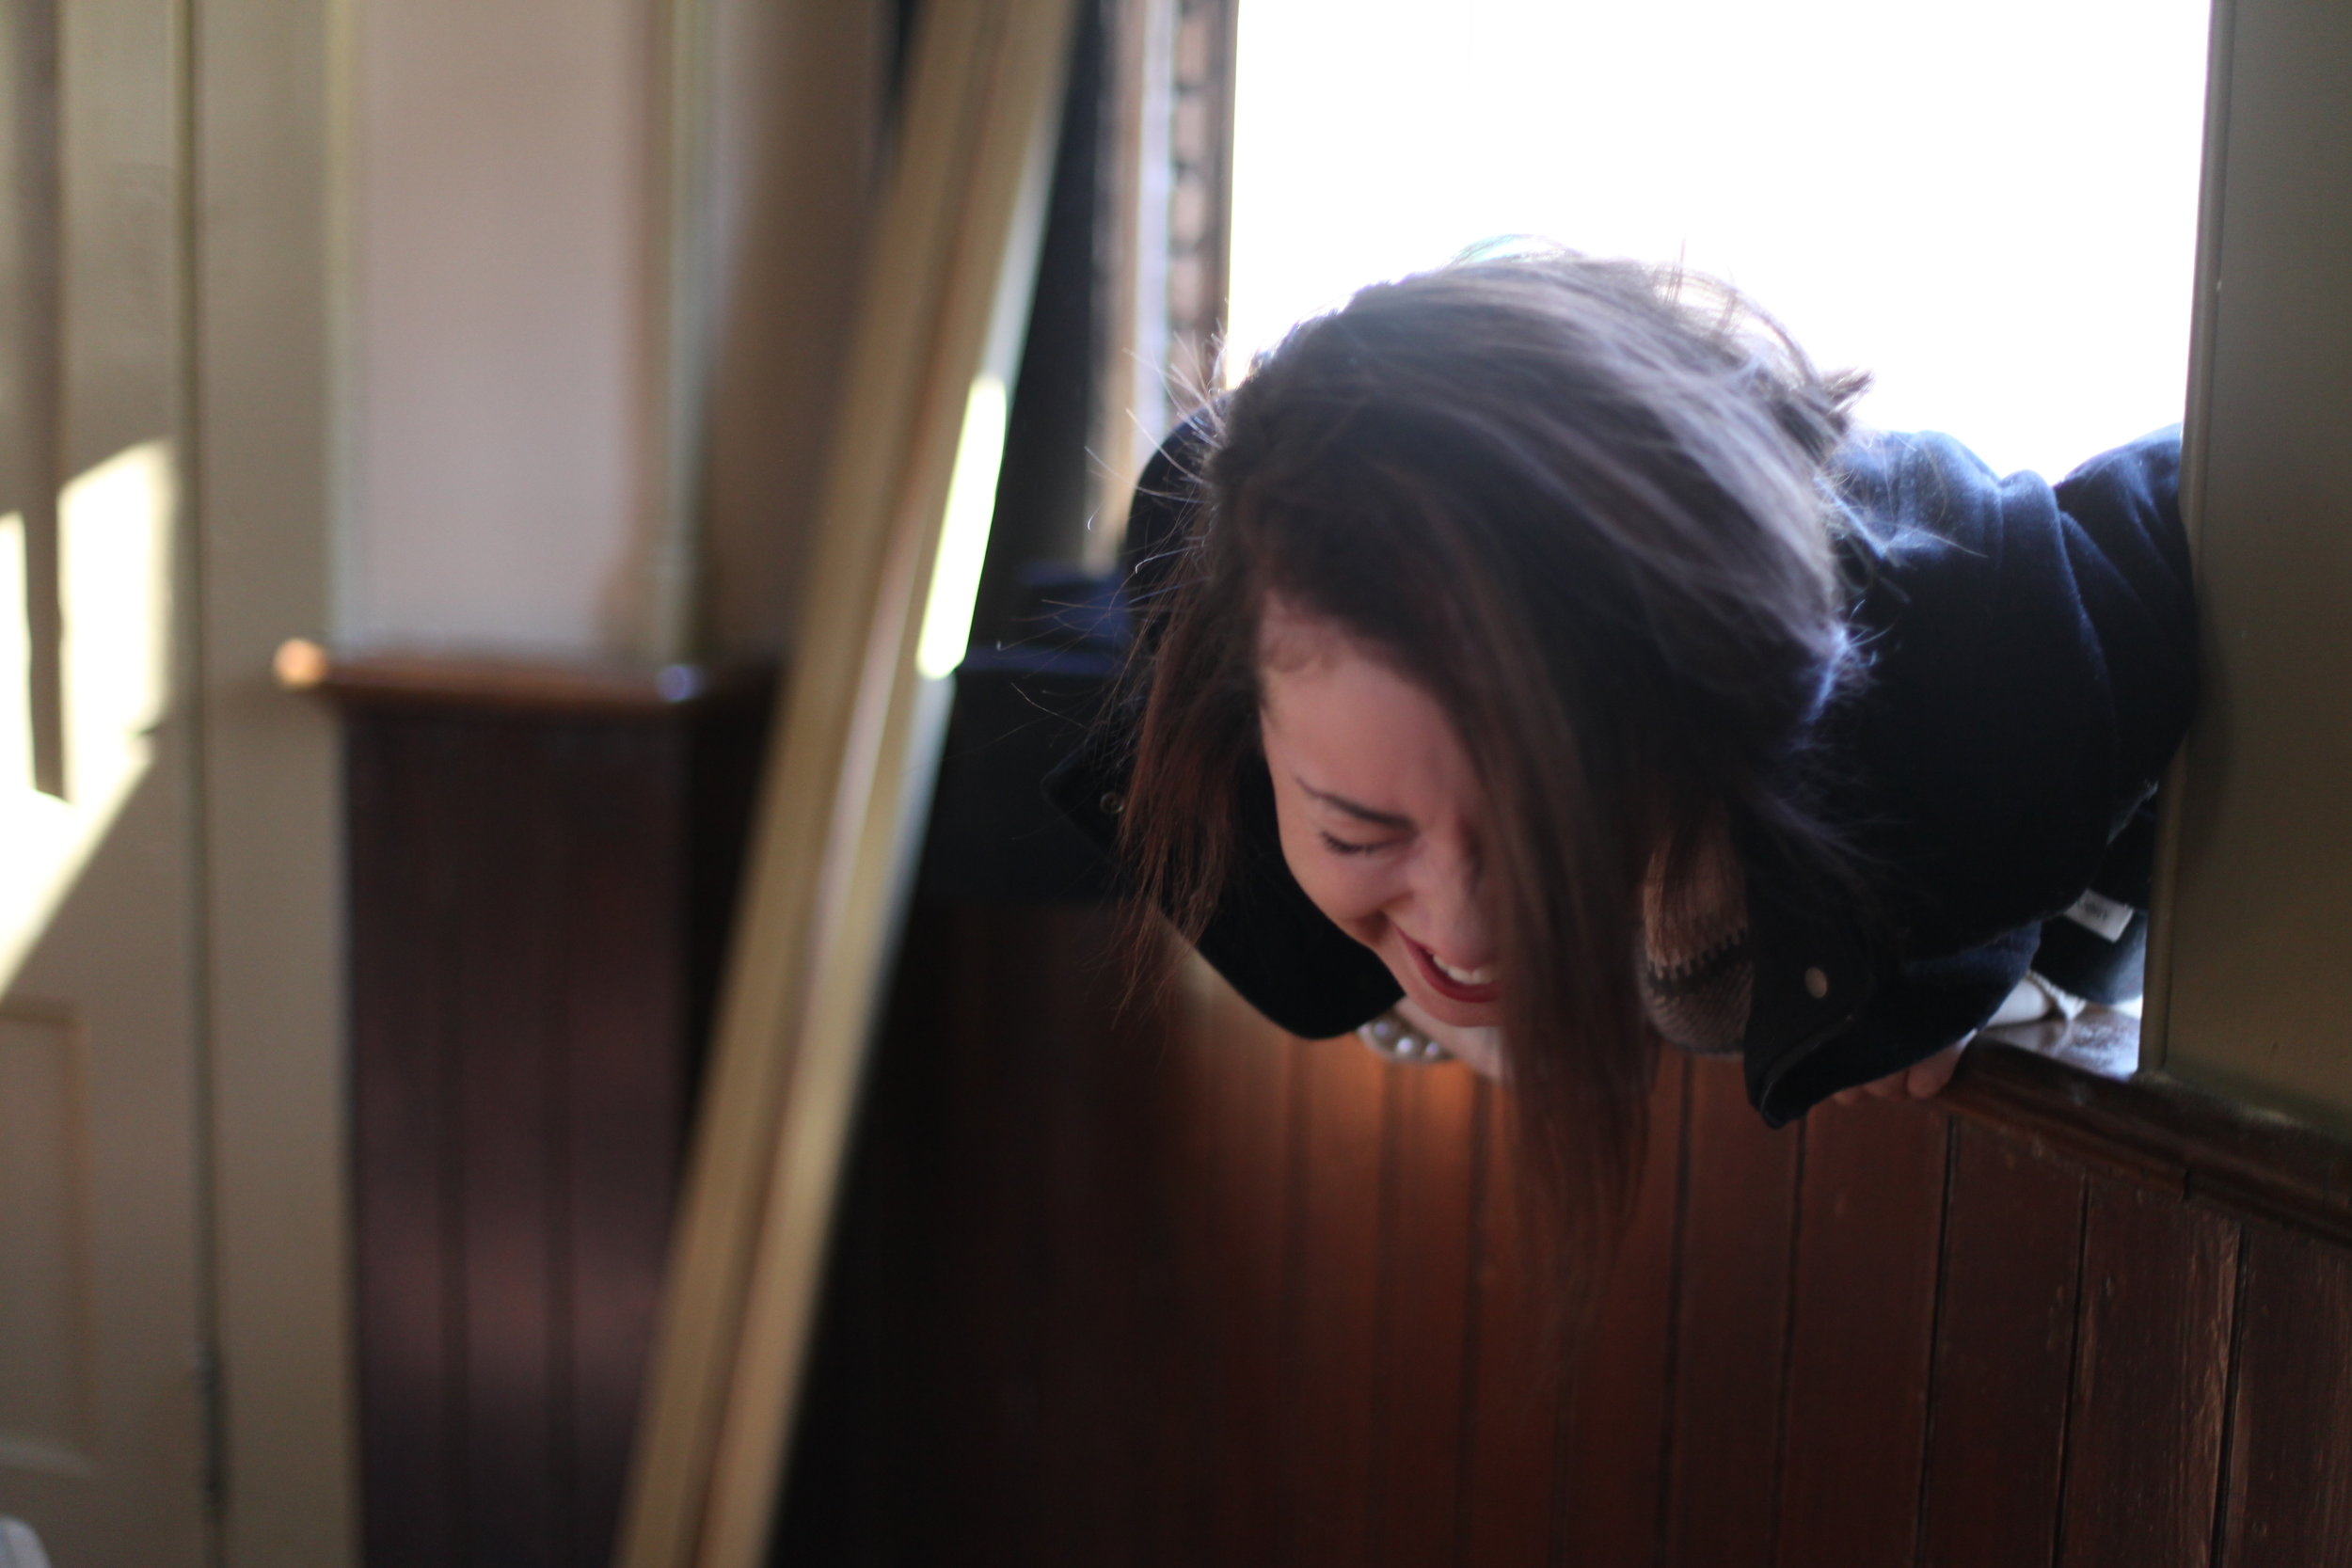 This is me falling through a window while breaking + entering on the day my hands were photographed by that typewriter.